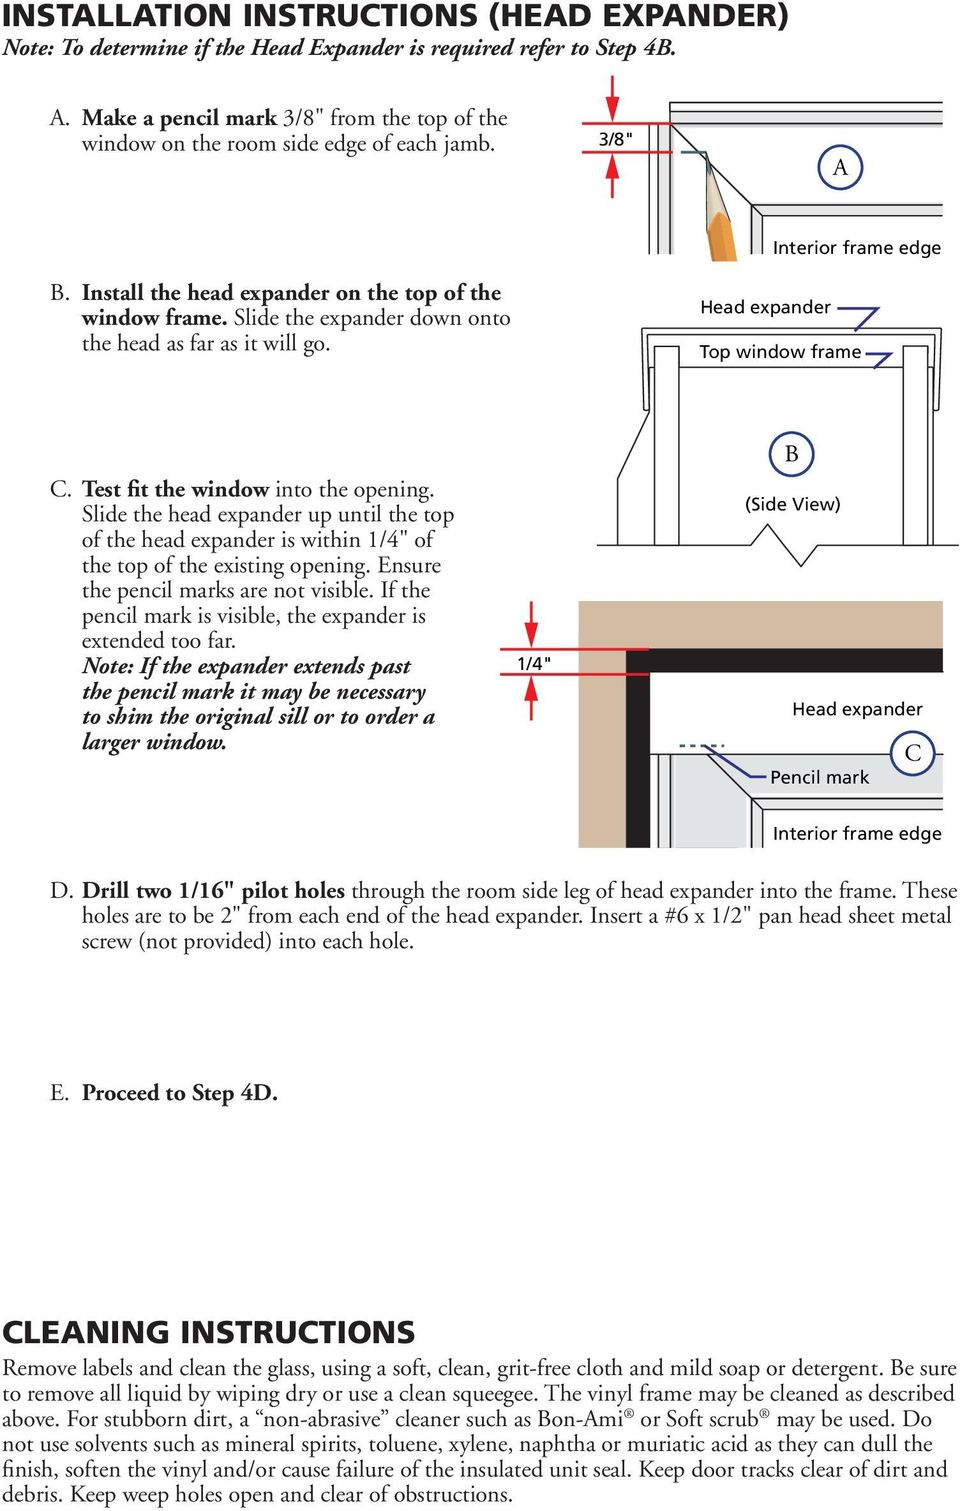 "If the Note: If the expander extends past the pencil mark it may be necessary to shim the original sill or to order a larger window. D. Drill two 1/16"" pilot holes E. Proceed to Step 4D."